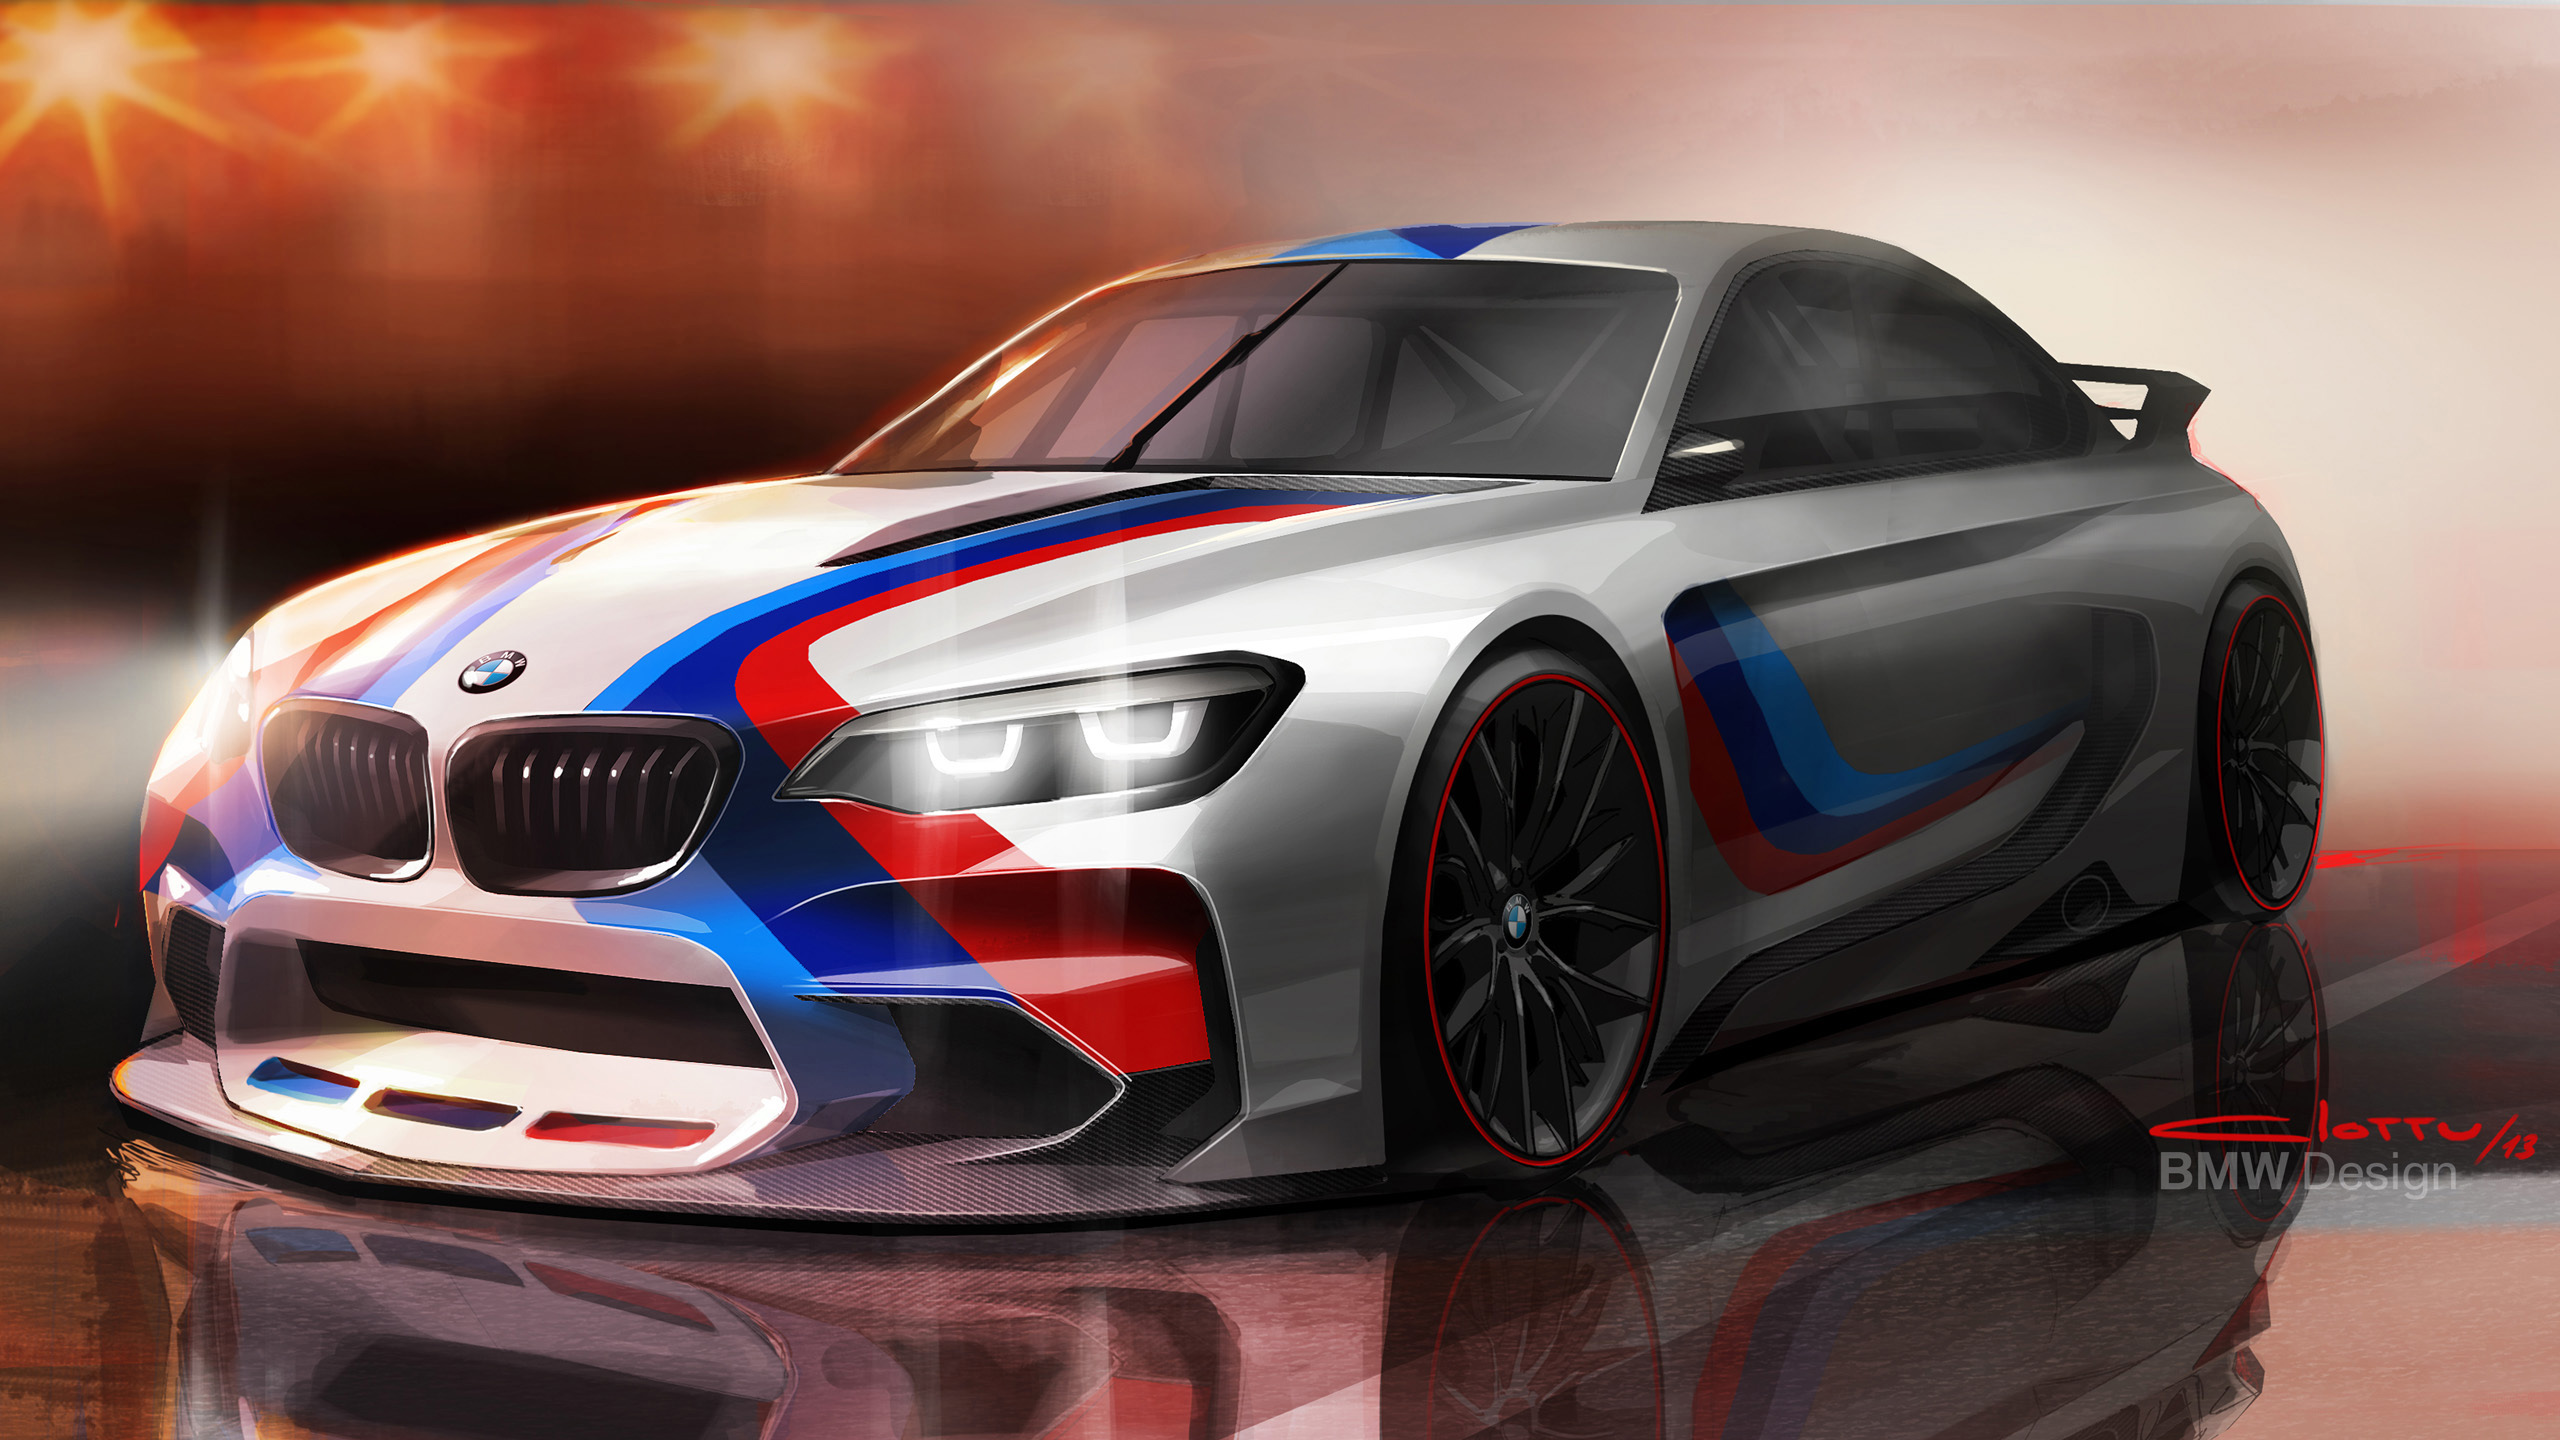 2014 BMW Vision Gran Turismo Concept Wallpaper | HD Car Wallpapers